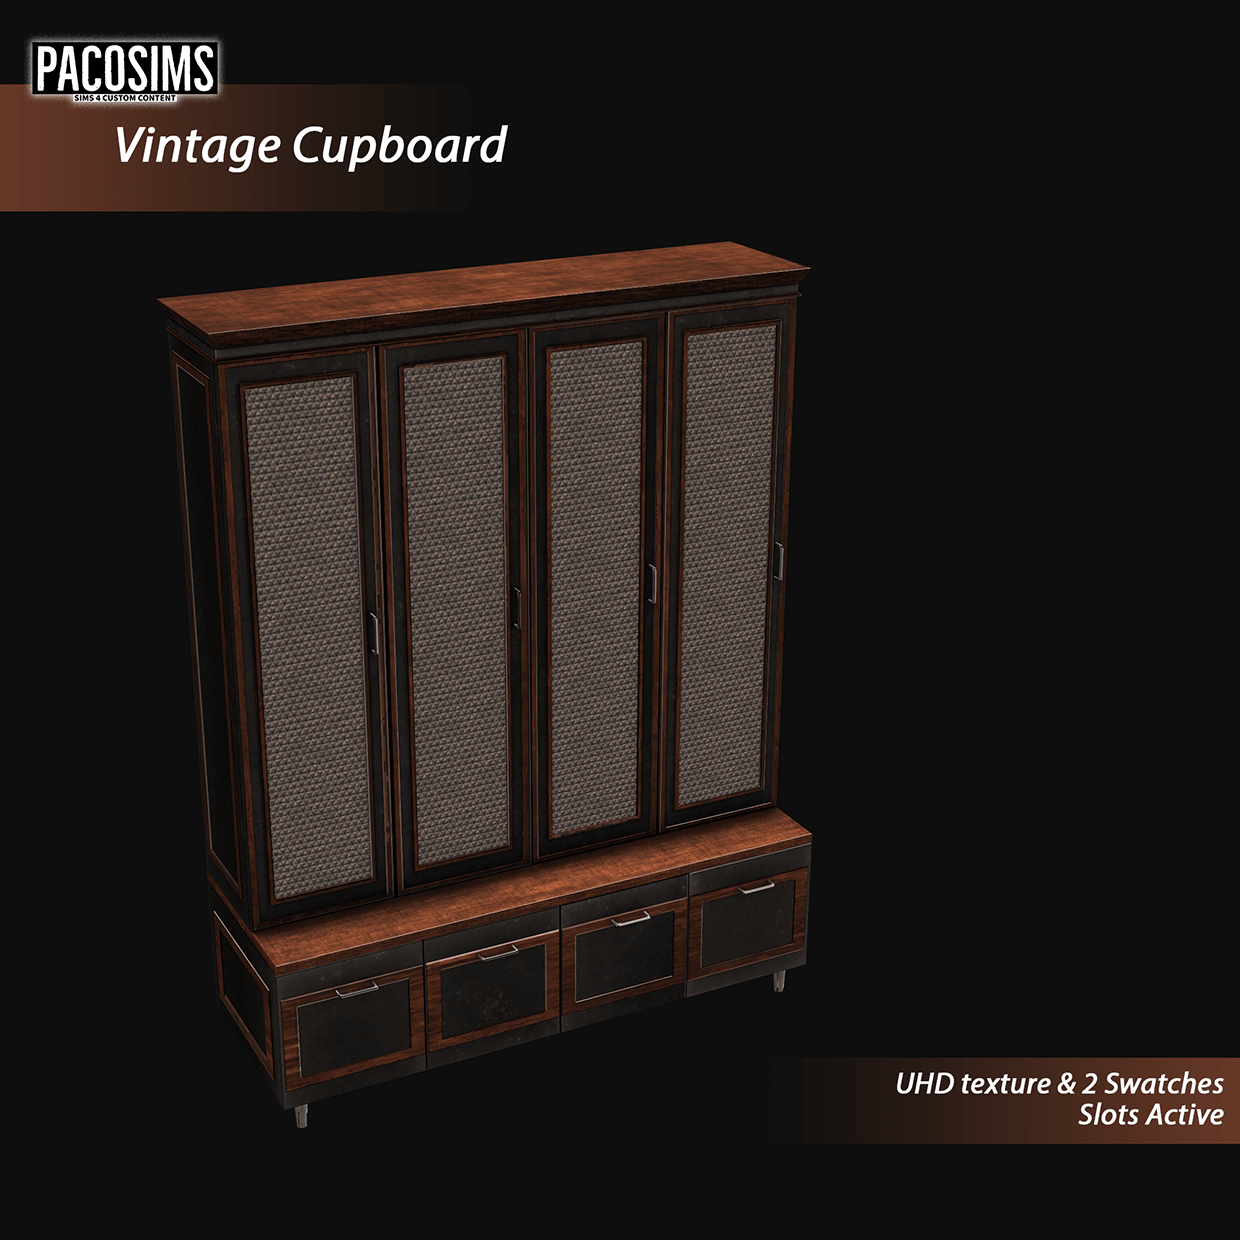 Vintage cupboard by PacoSims